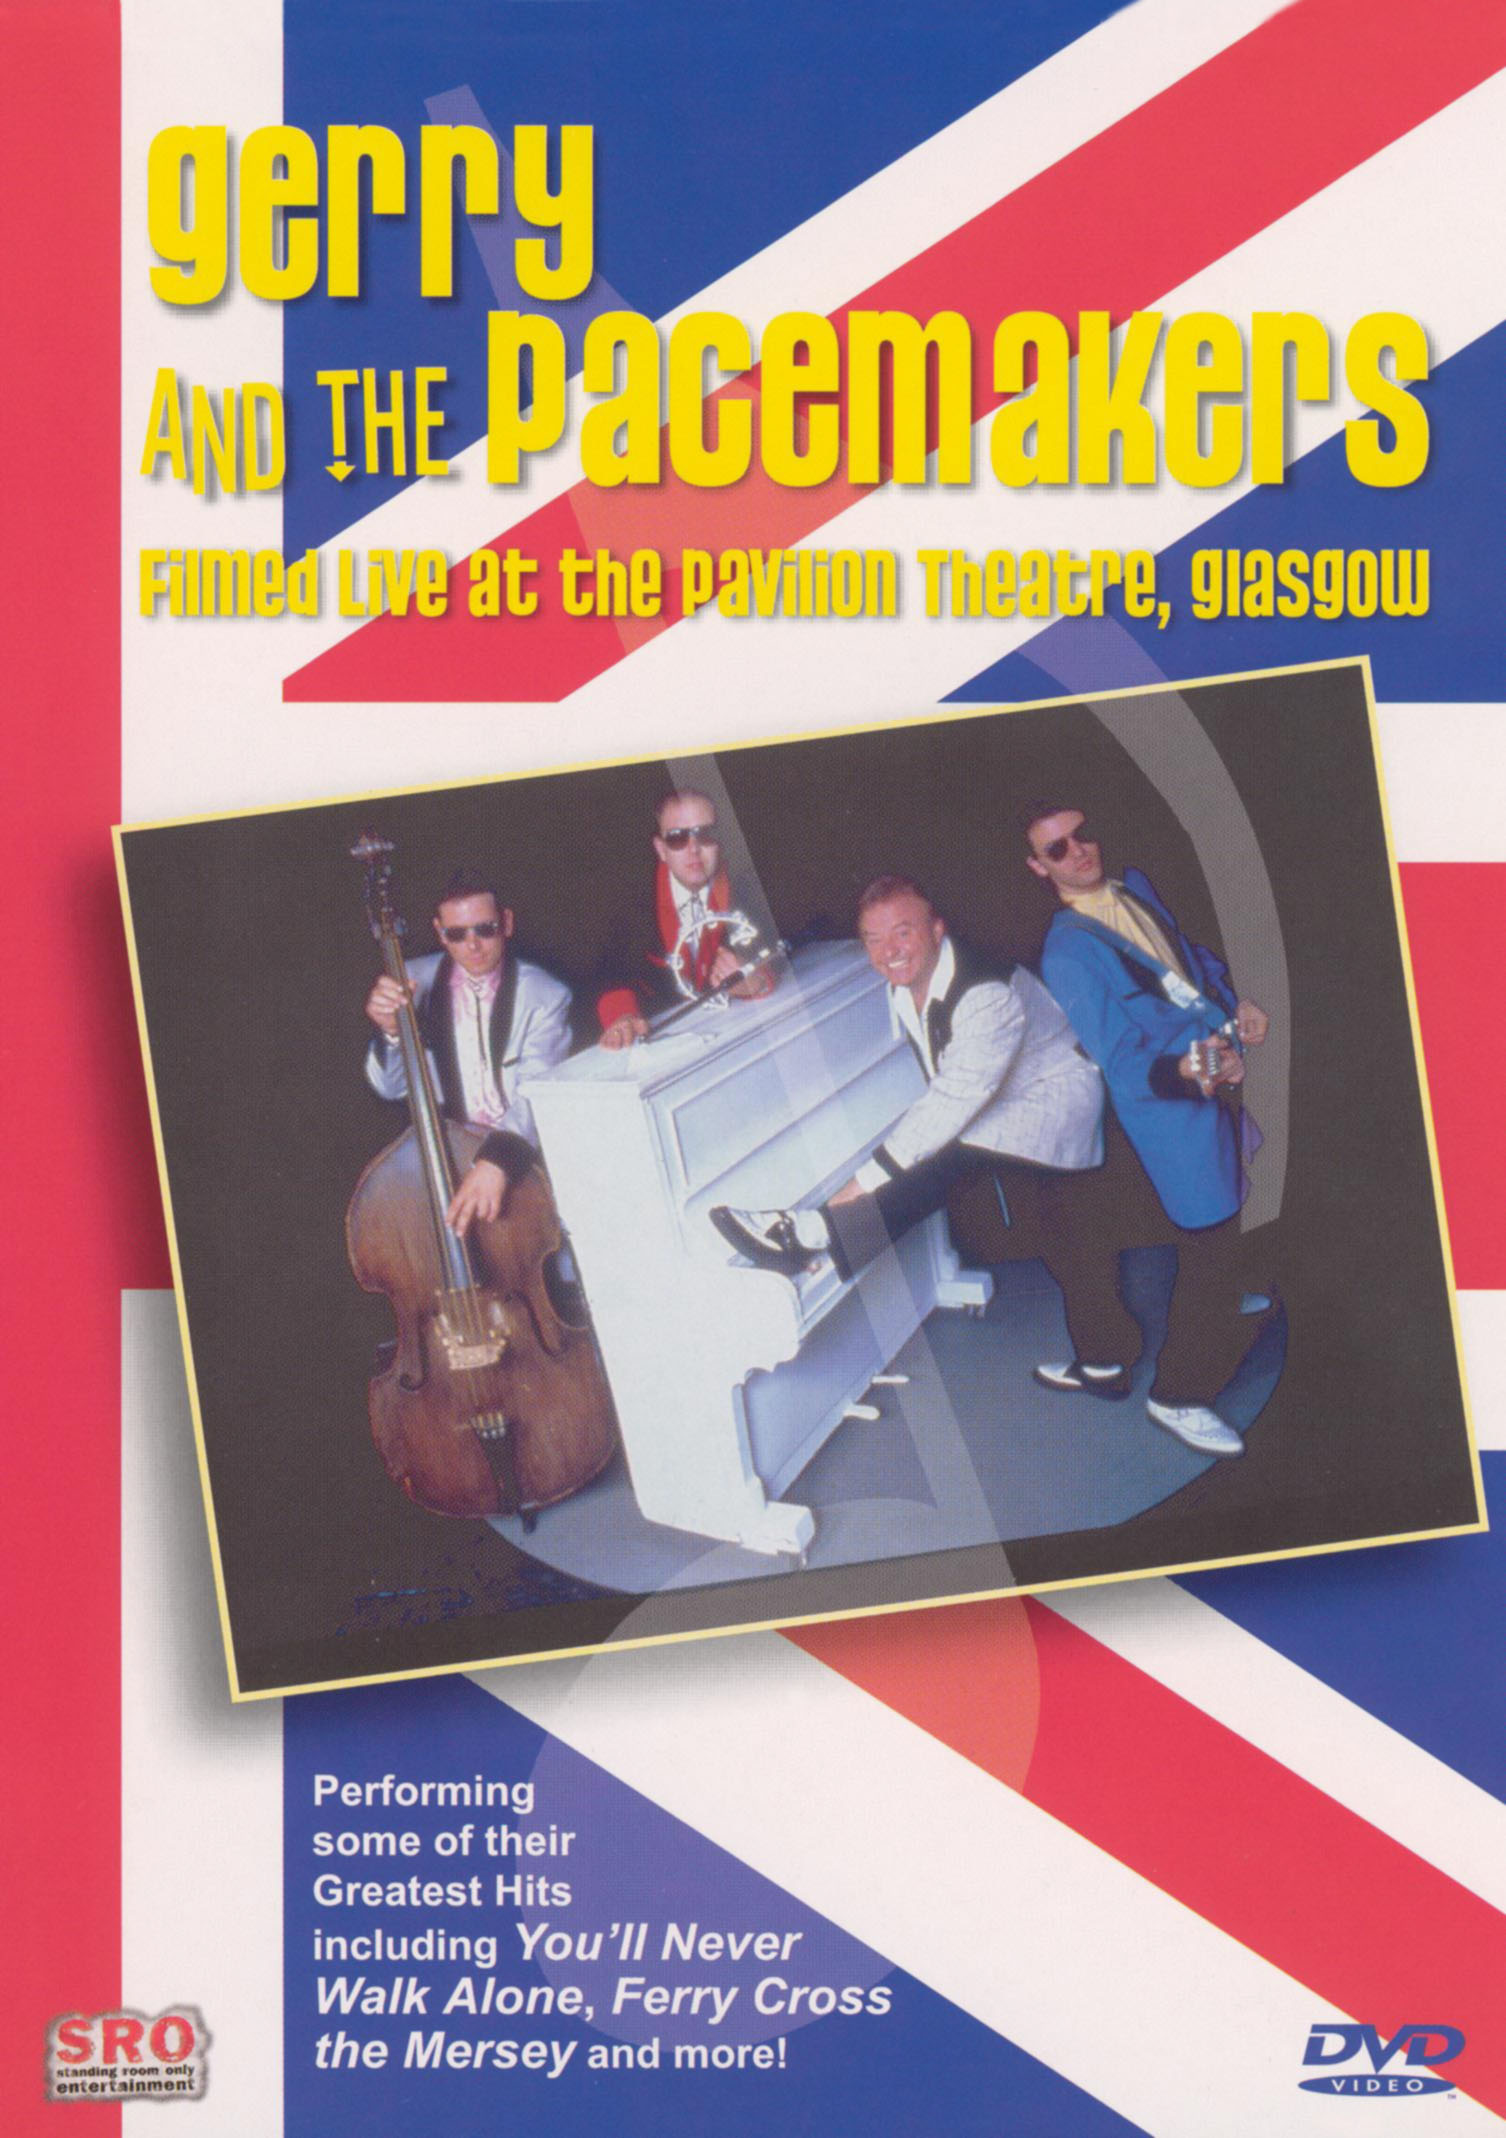 Gerry and the Pacemakers: Live at the Pavillion Theatre, Glasgow 1990